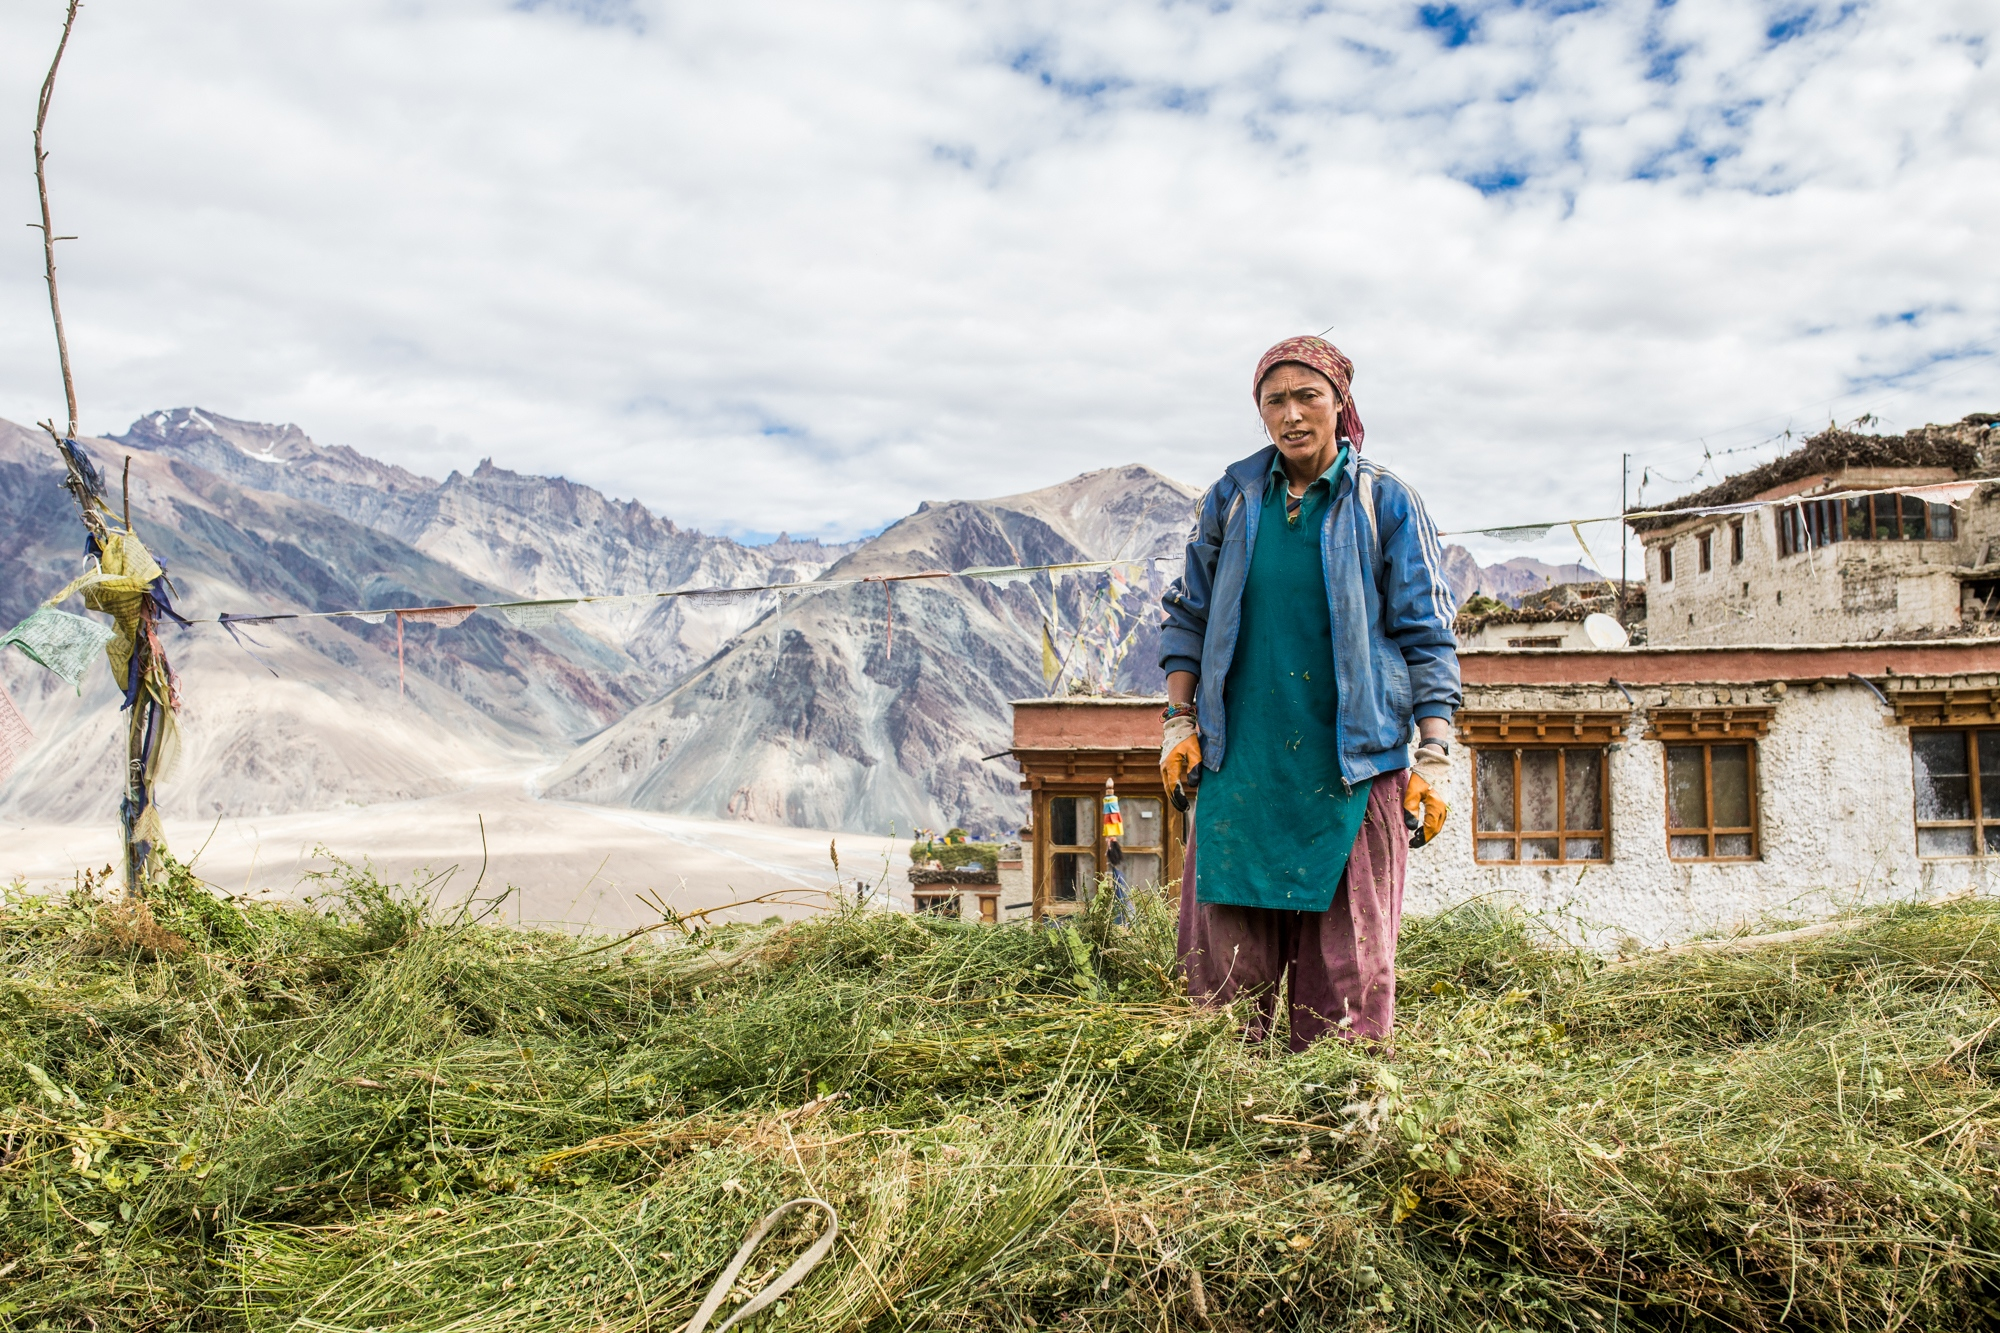 Tsewang Zangmo stands on top of her home and the fodder used to feed livestock during winter. Limited water supplies are reducing the amount that can be grown and, at times, is critically lacking. Kumik, India.